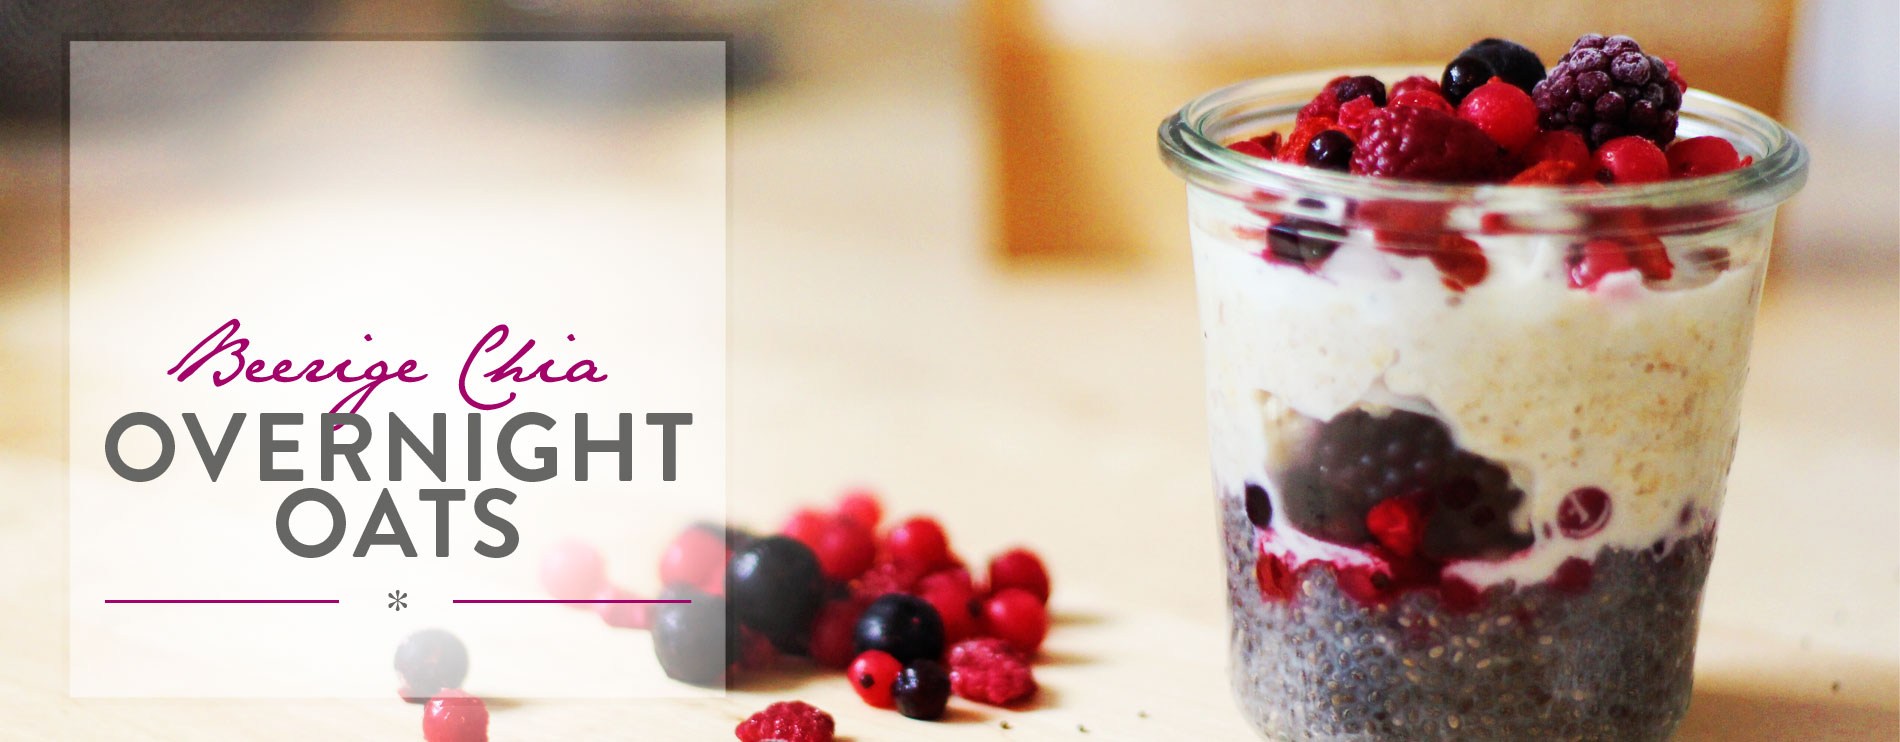 Header Beerige Chia Overnight Oats